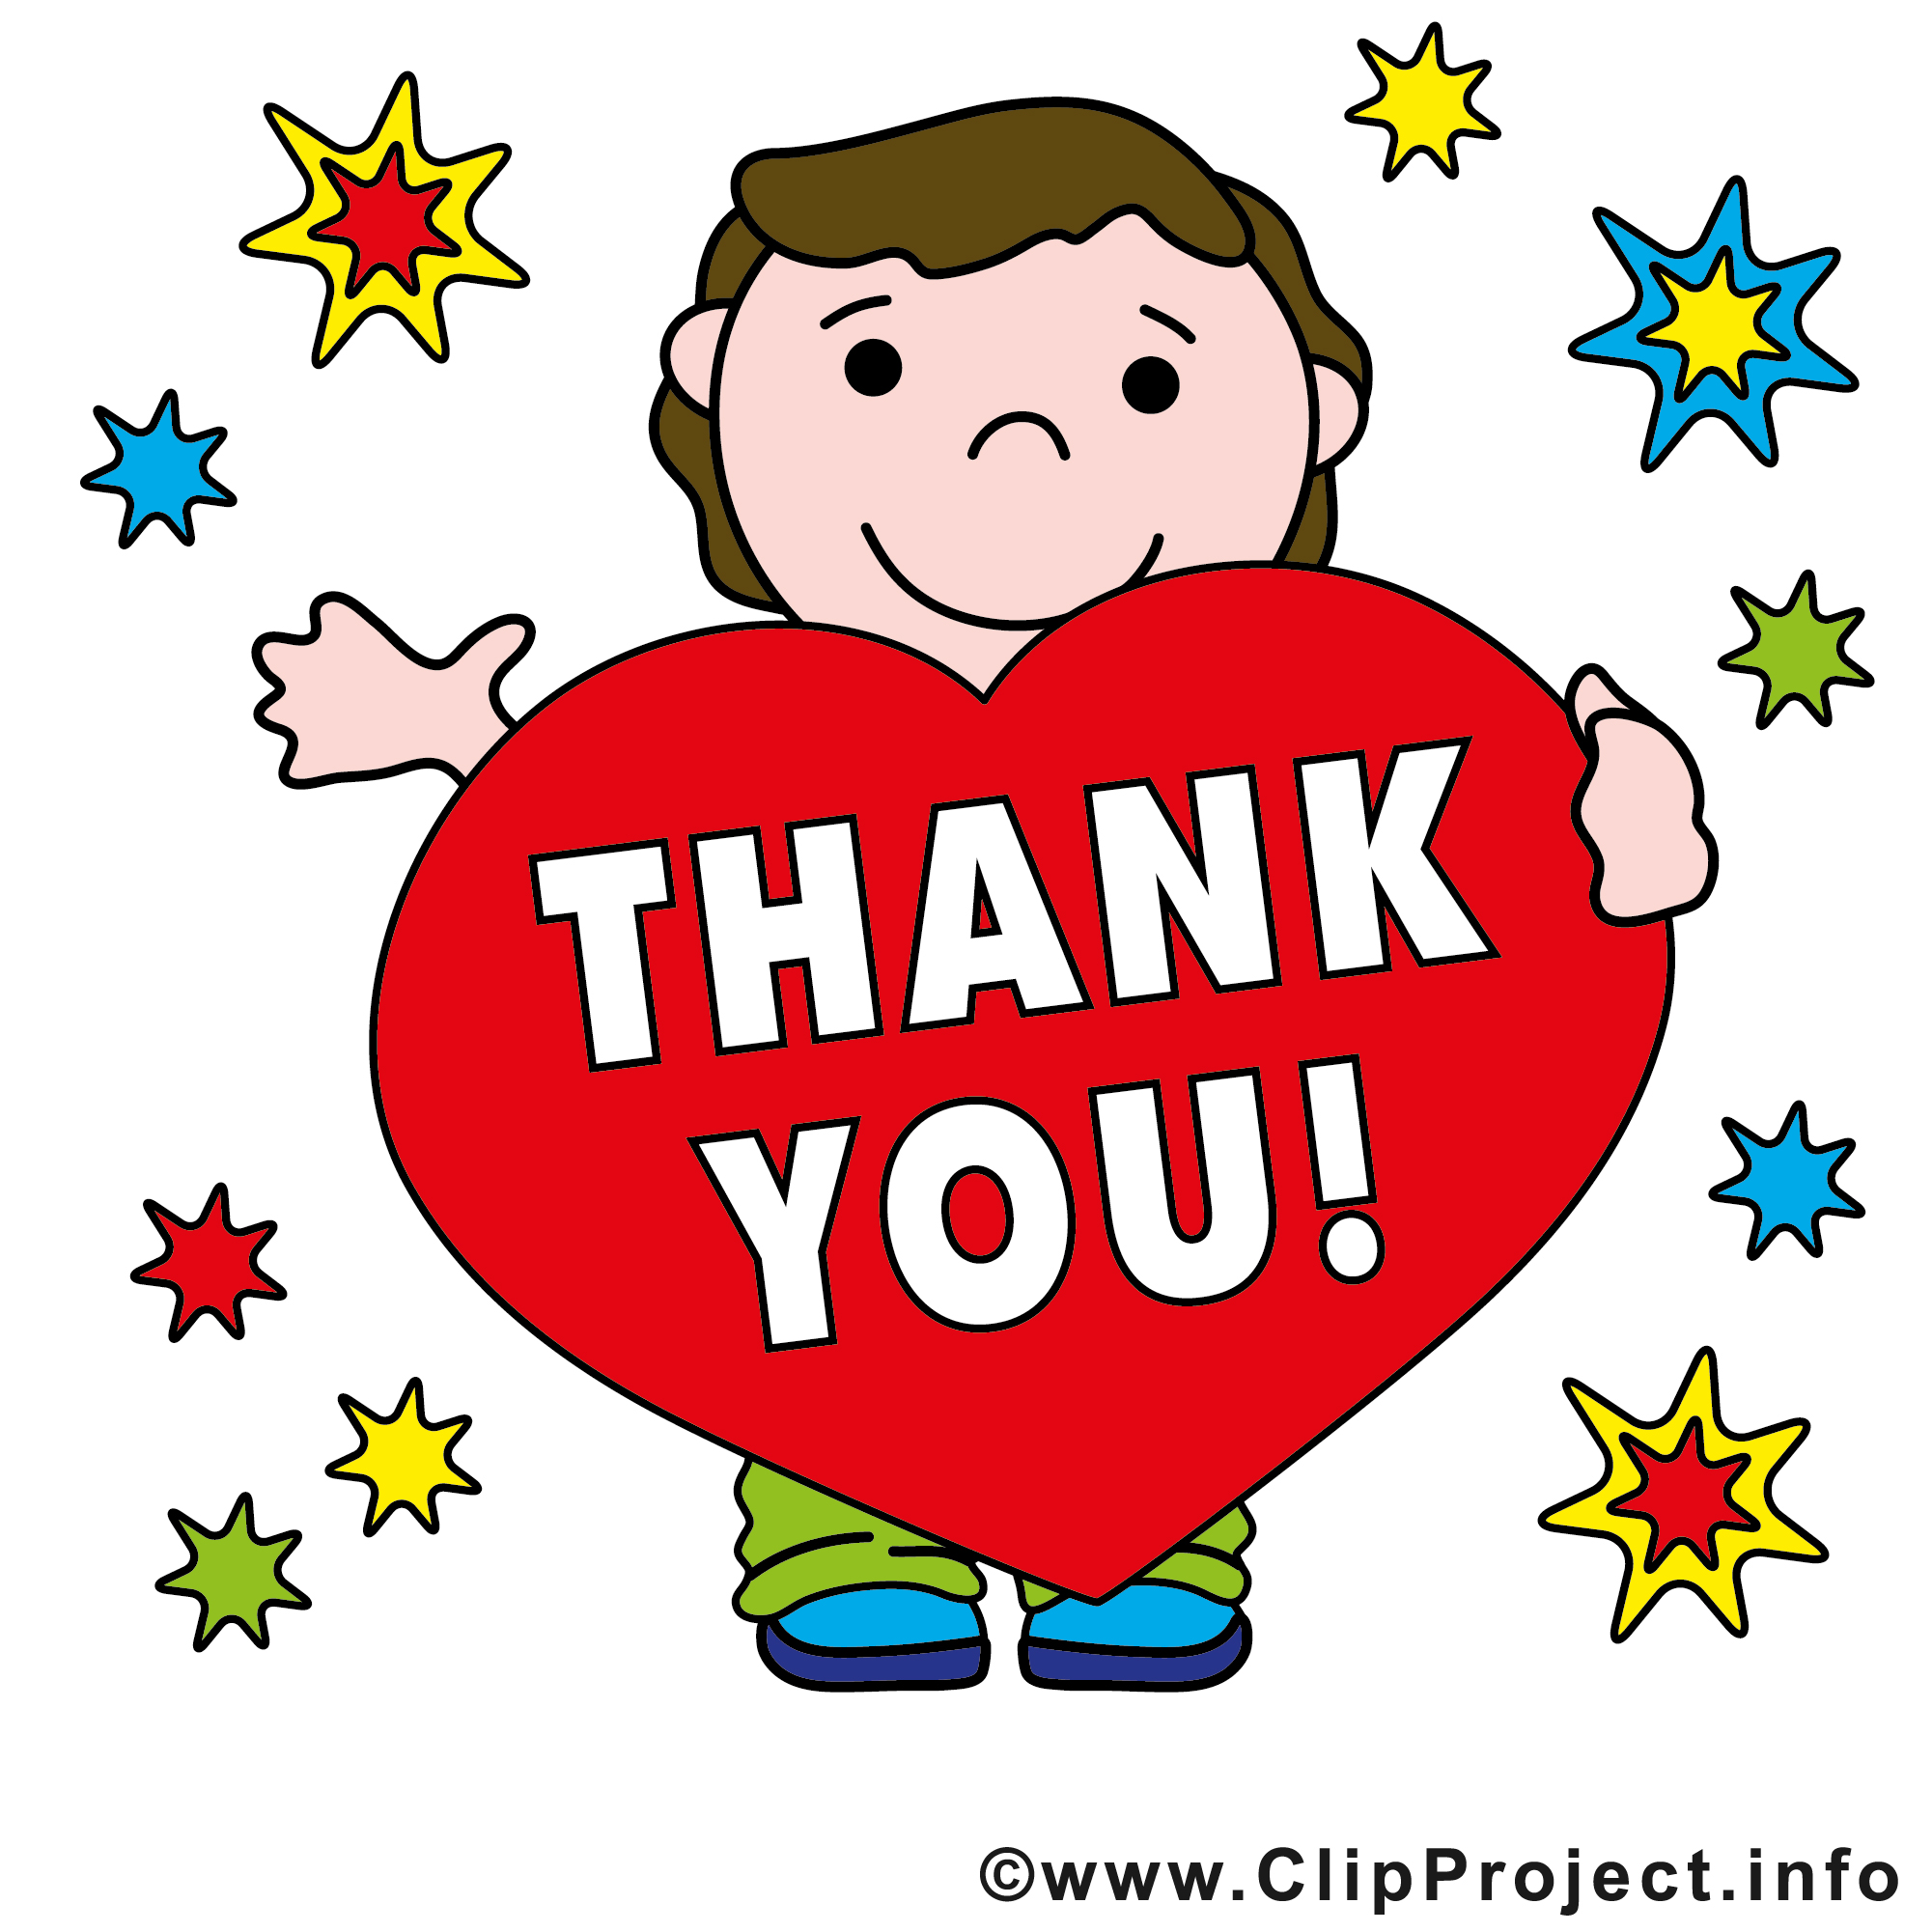 Thank you clipart fall transparent download Free Thank You Clipart, Download Free Clip Art, Free Clip Art on ... transparent download